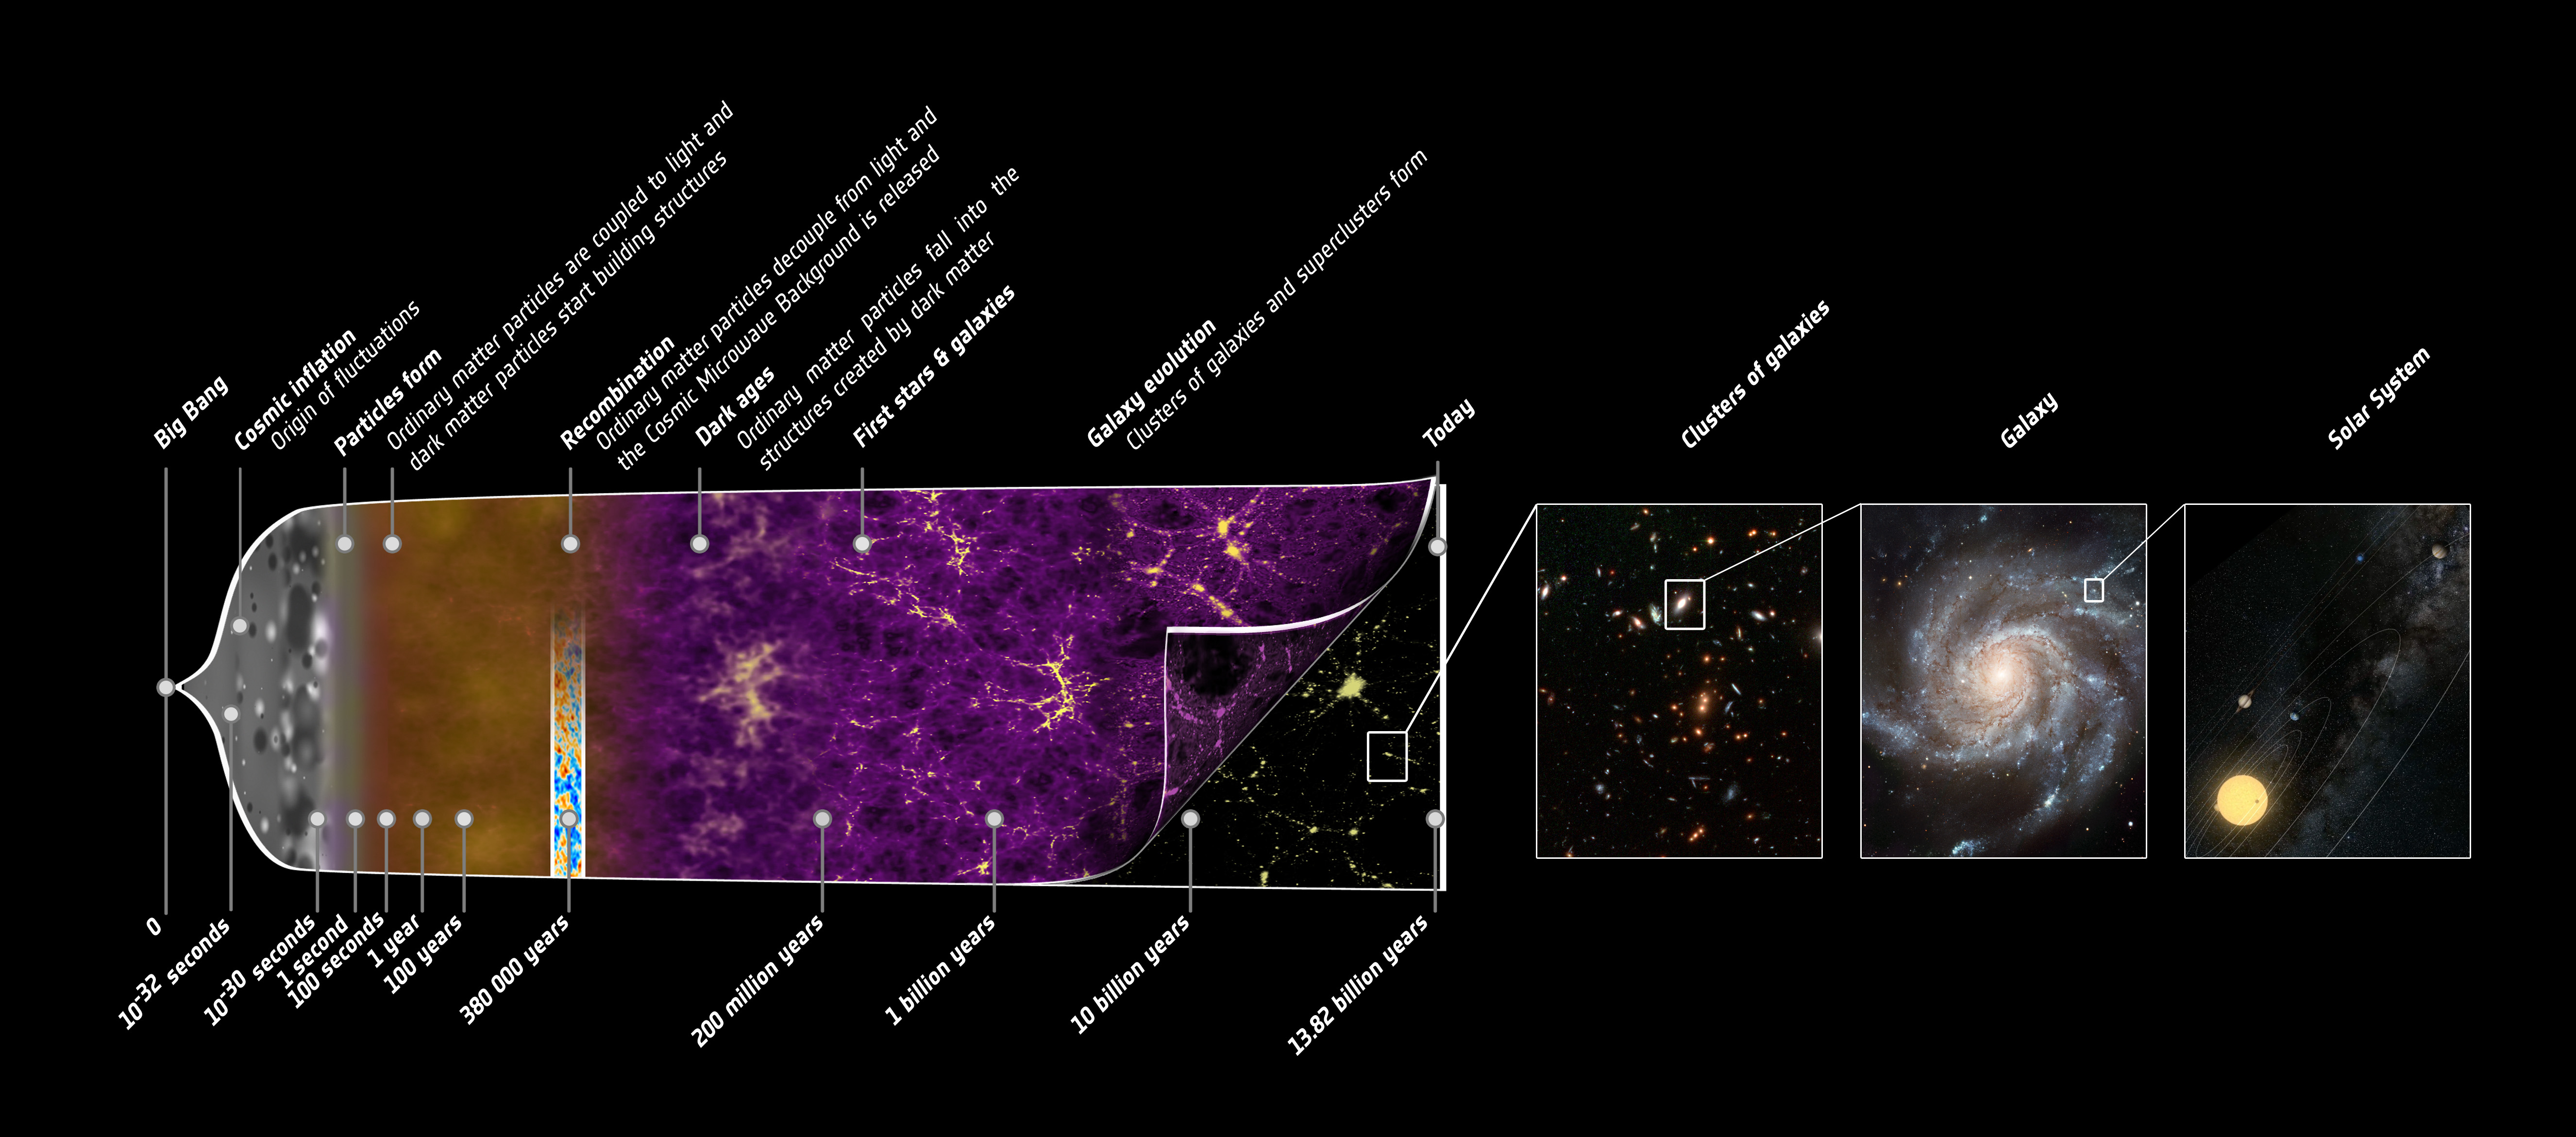 origin of the universe Most astronomers believe the universe began 138 billion years ago in a   scientists call this theory for the origin of the universe the big bang.